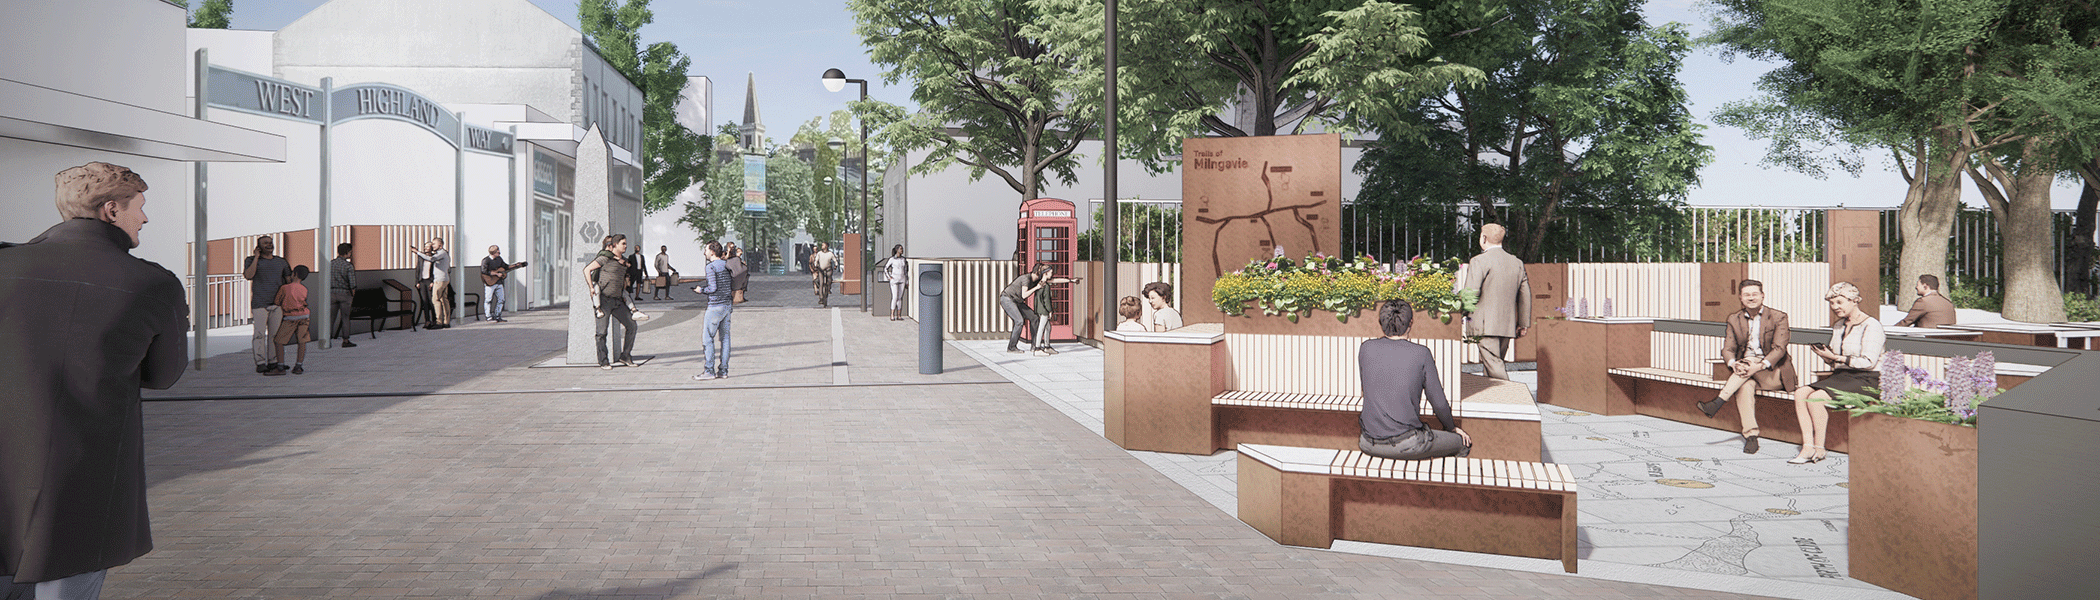 Taking strides towards future in town centre